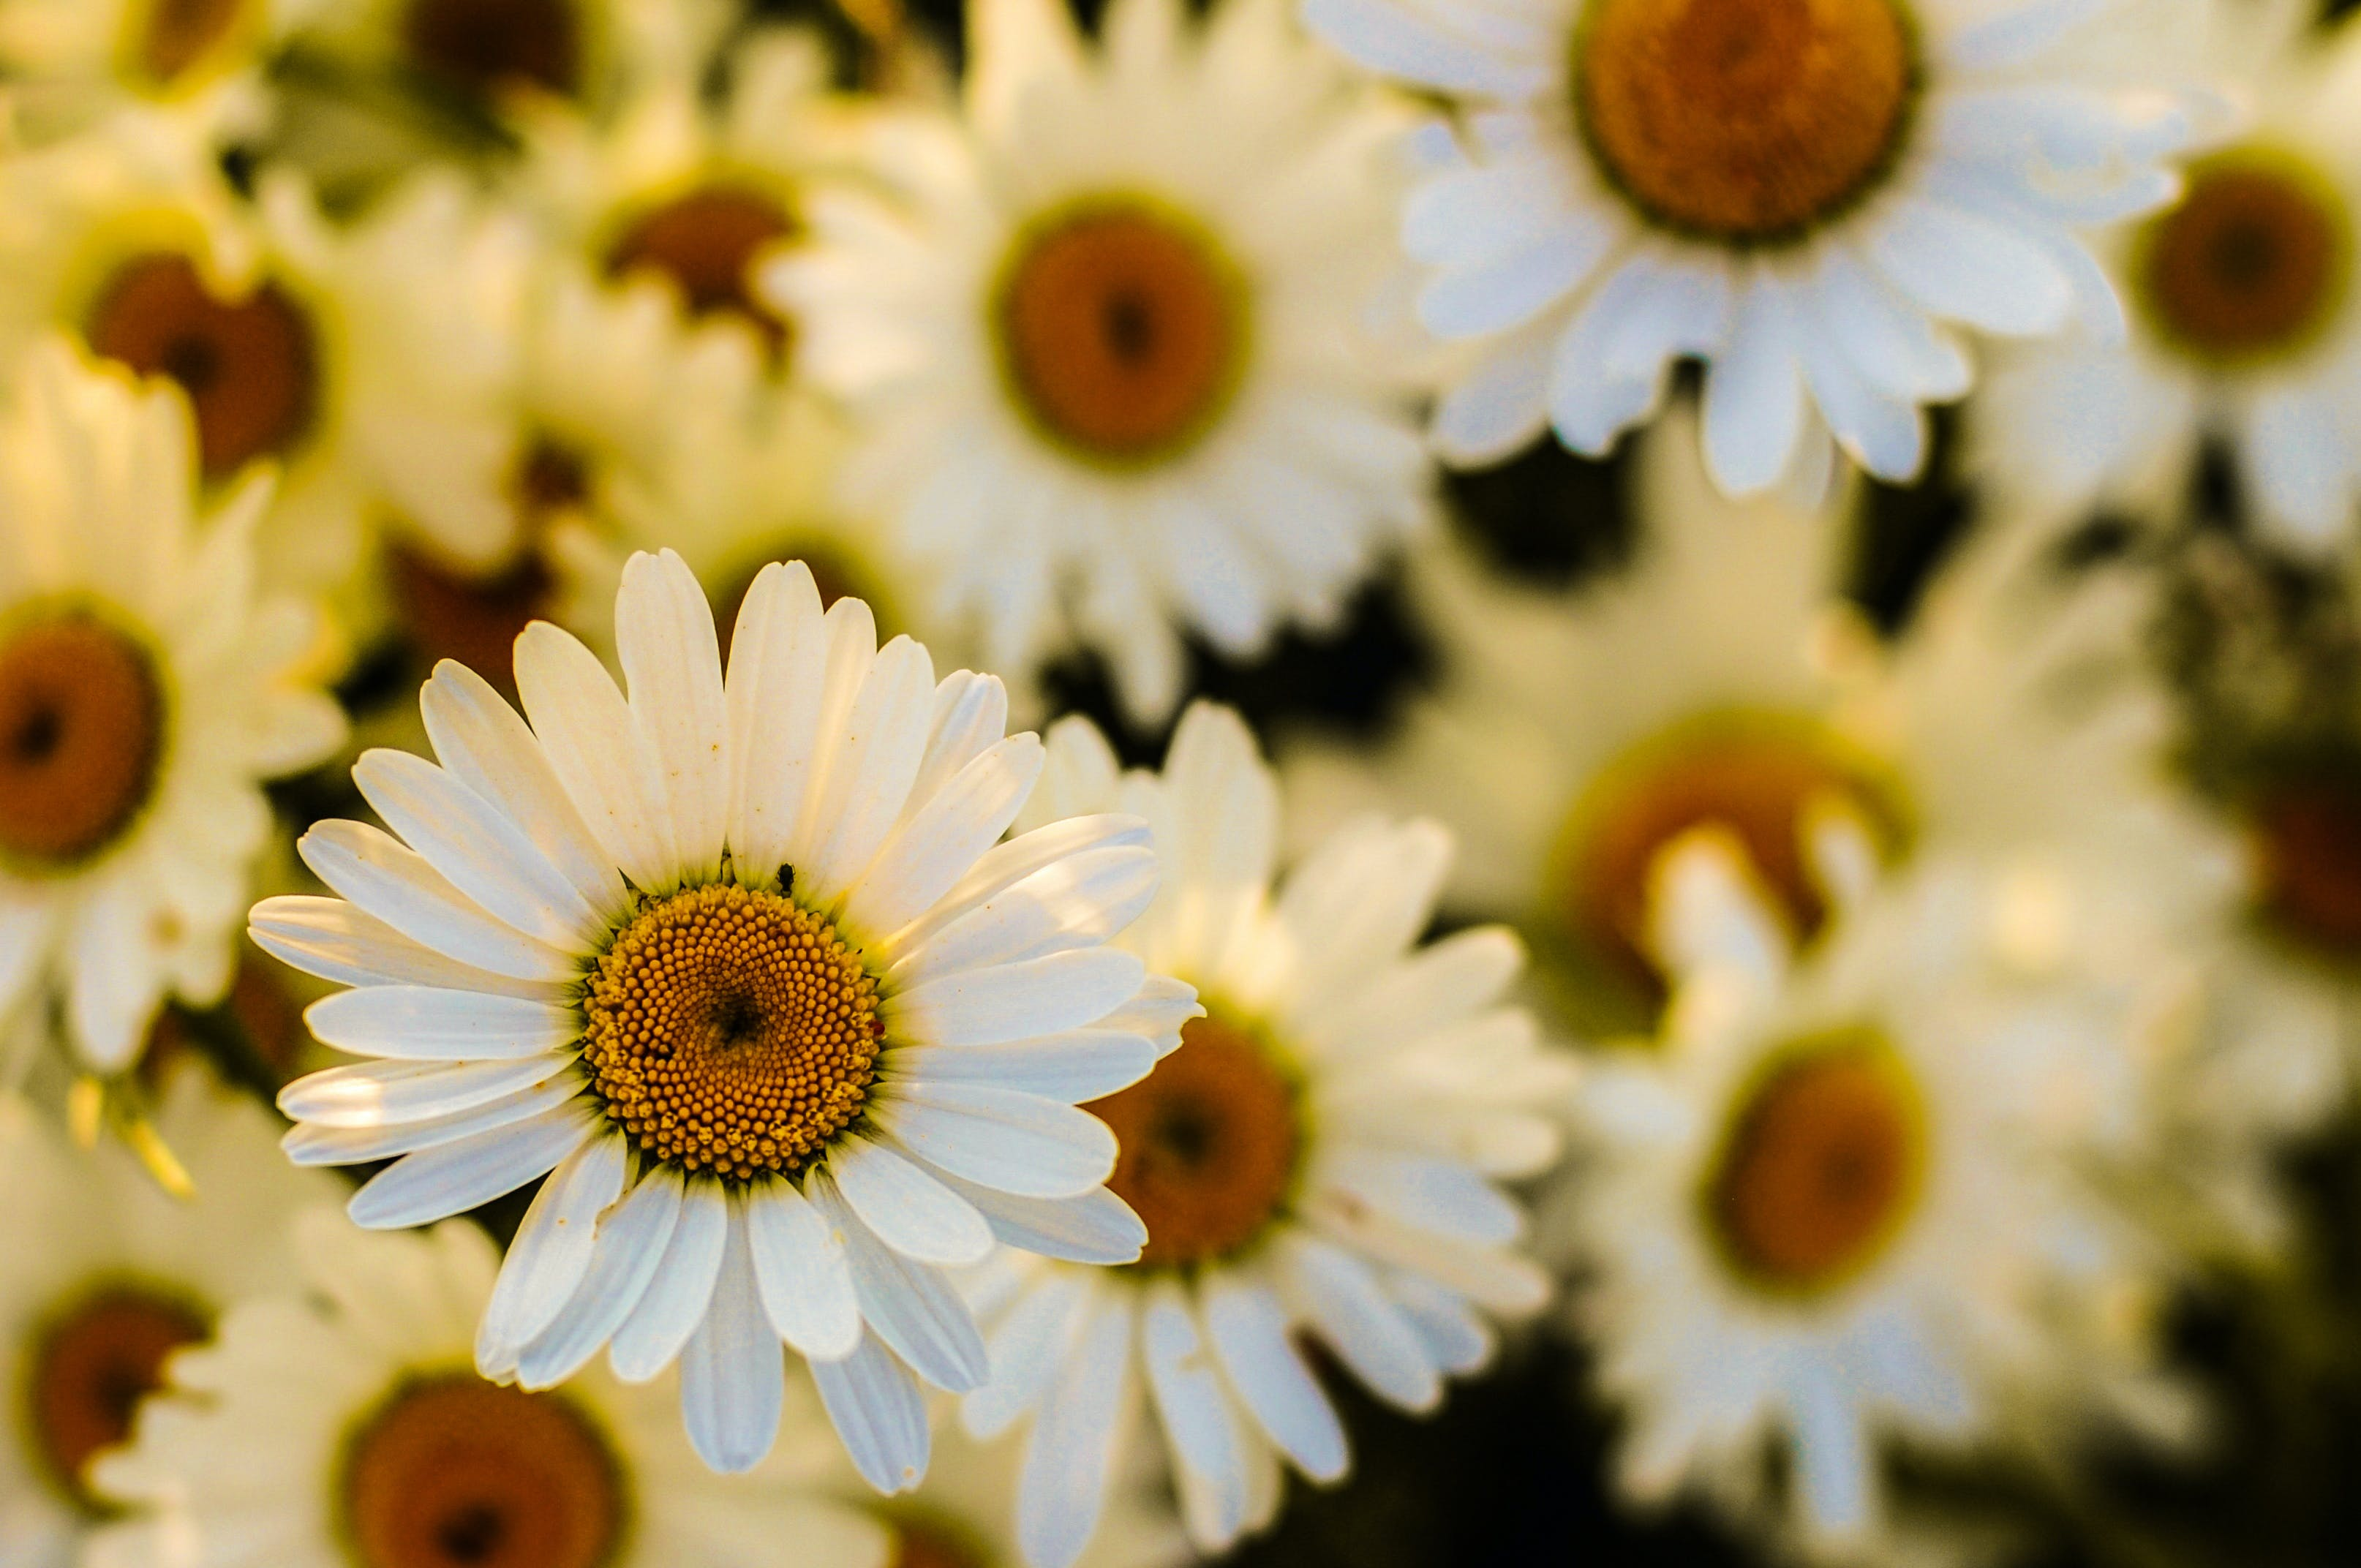 Selective Focus Photography of White Daisy Flower in Bloom